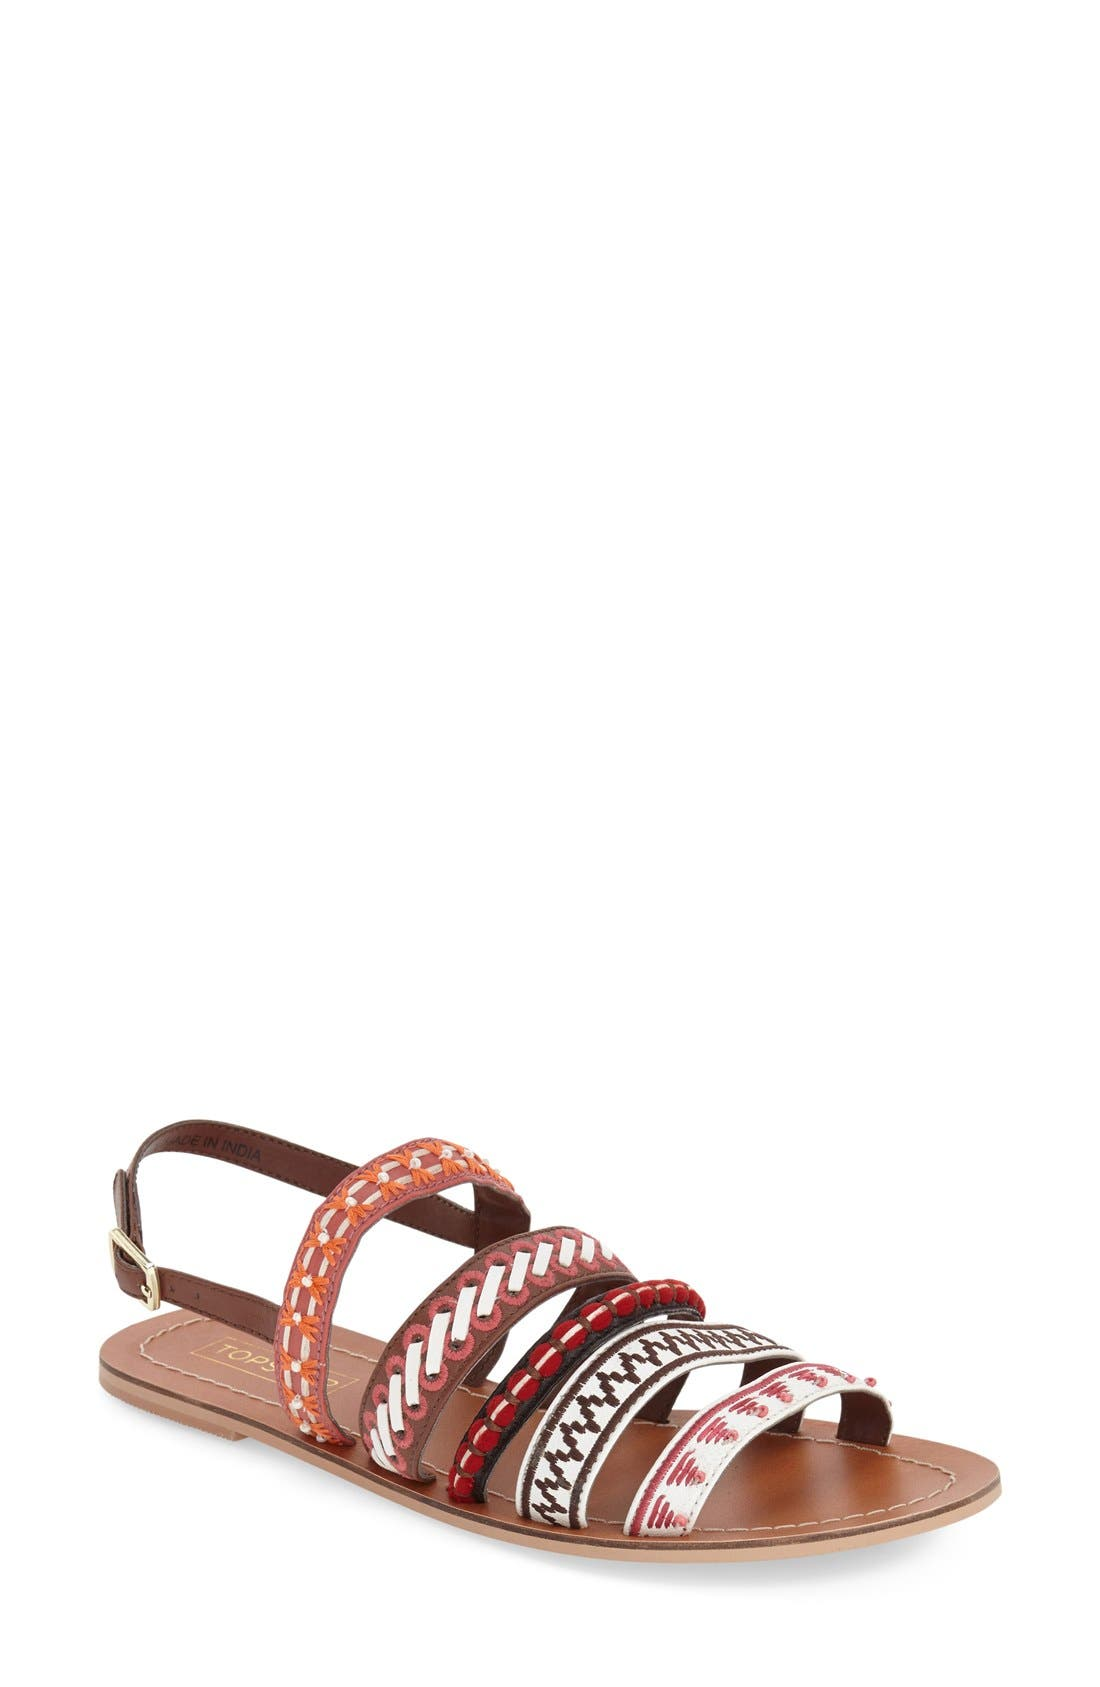 Alternate Image 1 Selected - Topshop 'Harmony' Mixed Strap Sandal (Women)